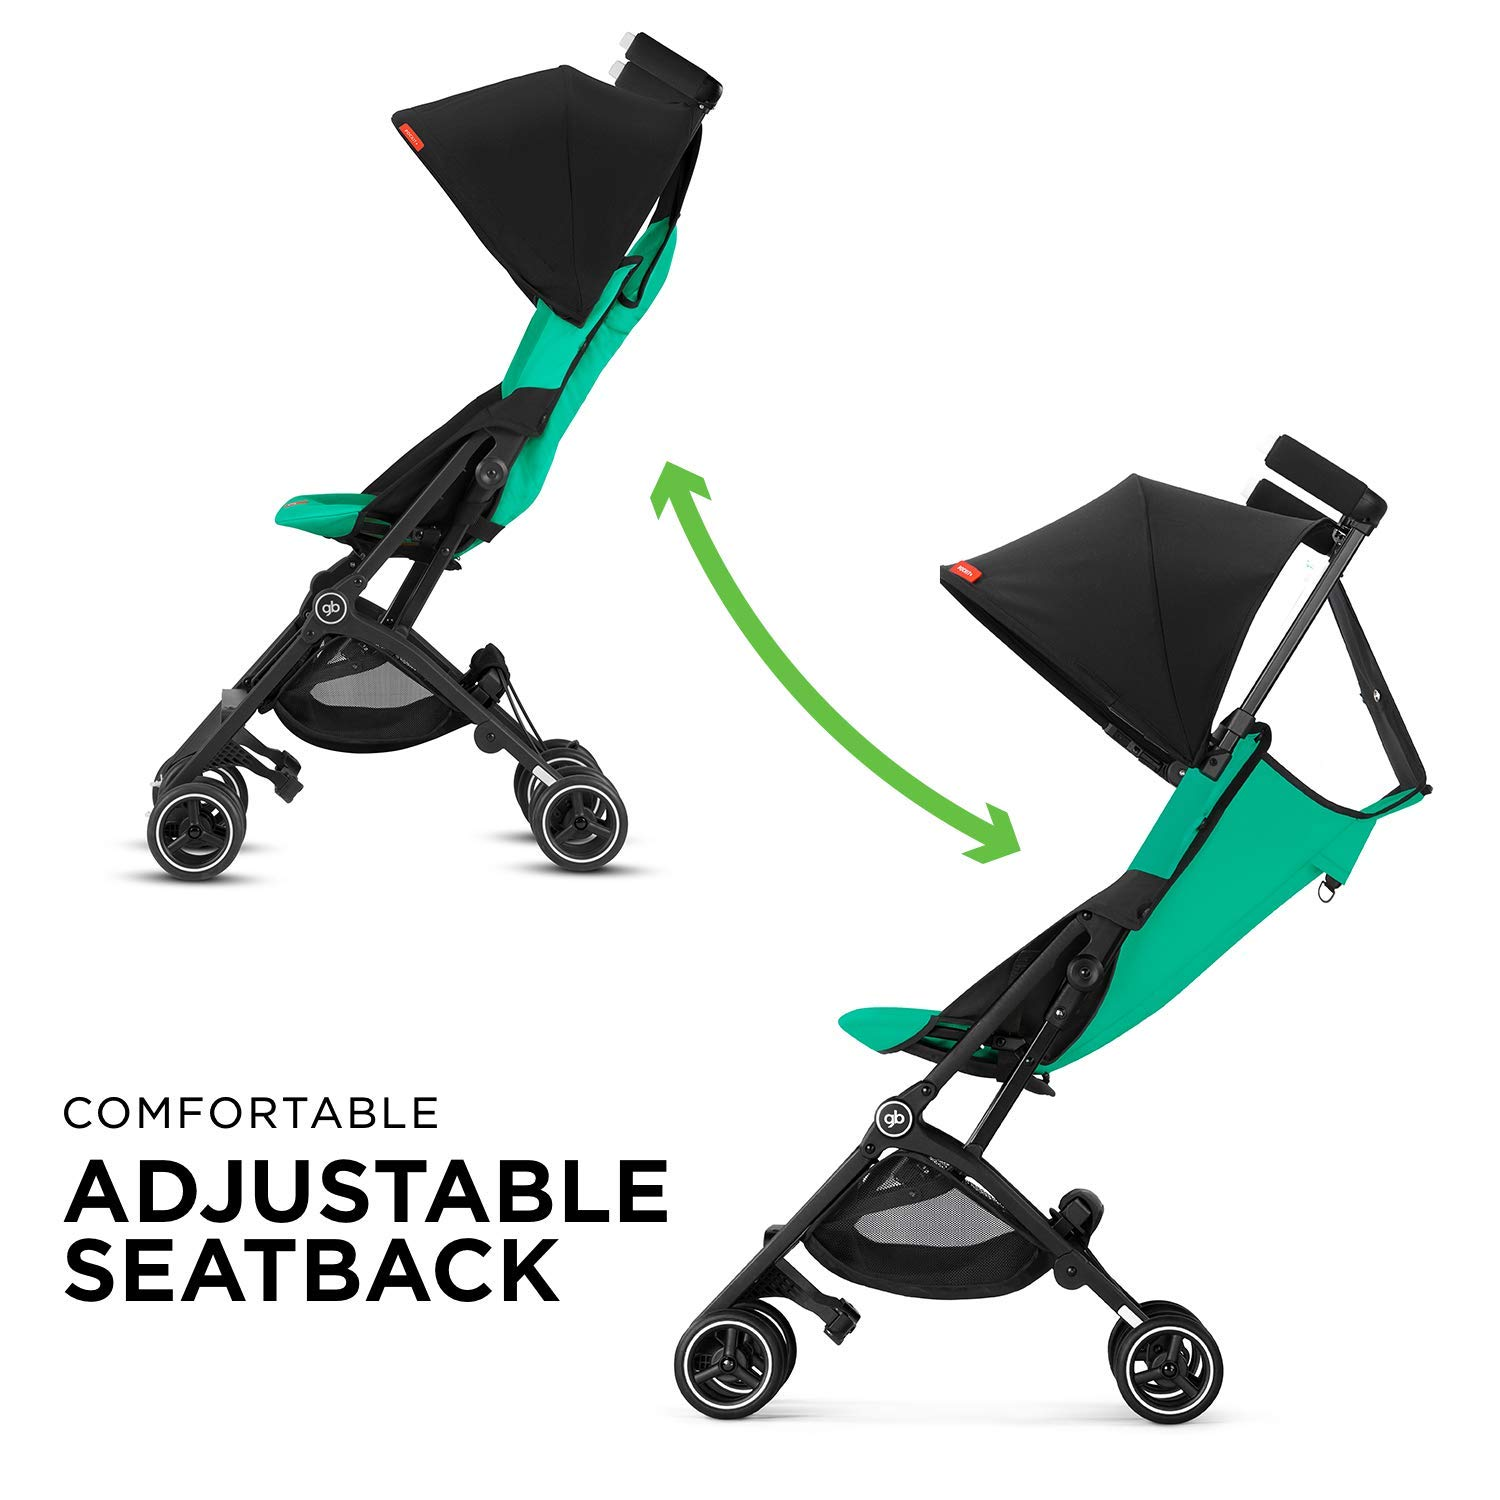 gb Pockit+ Lightweight Baby Stroller, Umbrella Stroller, Collapsible, Travel-Friendly, Folds into Backpack, Fits in Overhead Compartments, Reclining Seat, UPF50+ Sun Canopy, Laguna Blue by gb (Image #5)